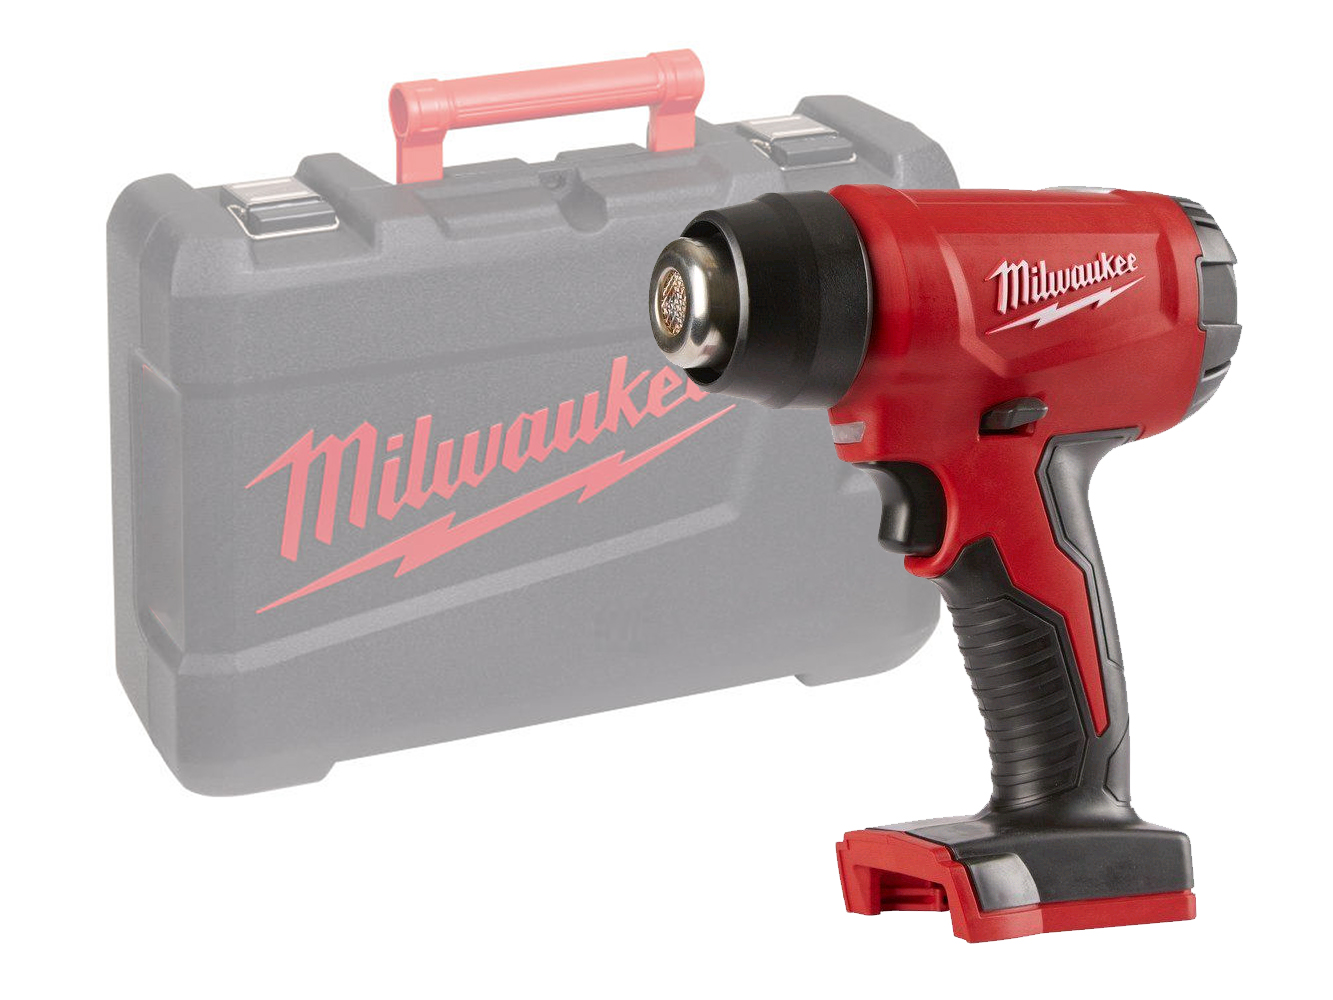 MILWAUKEE 18V FUEL BRUSHLESS HEAT GUN - M18BHG - BODY ONLY